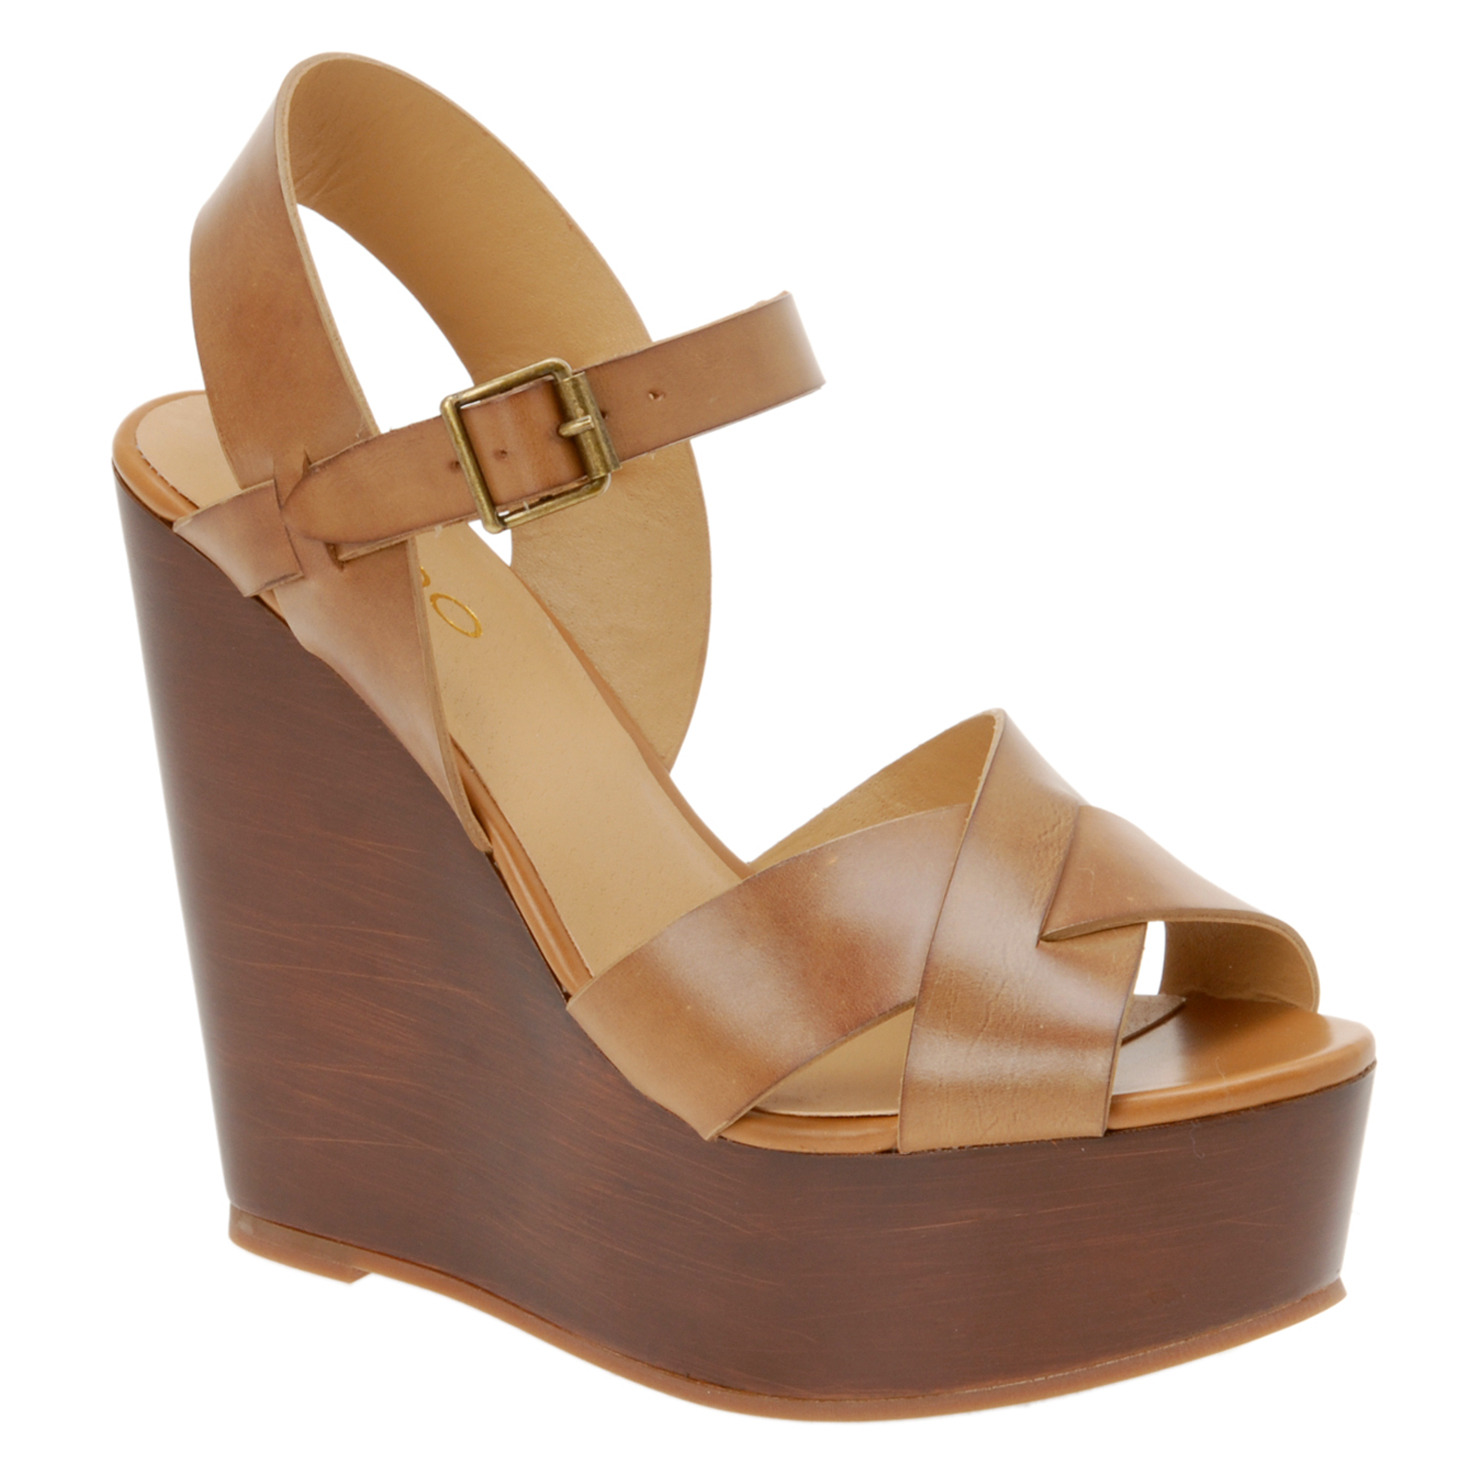 the fancy times fancy wedge sandals 125 or less